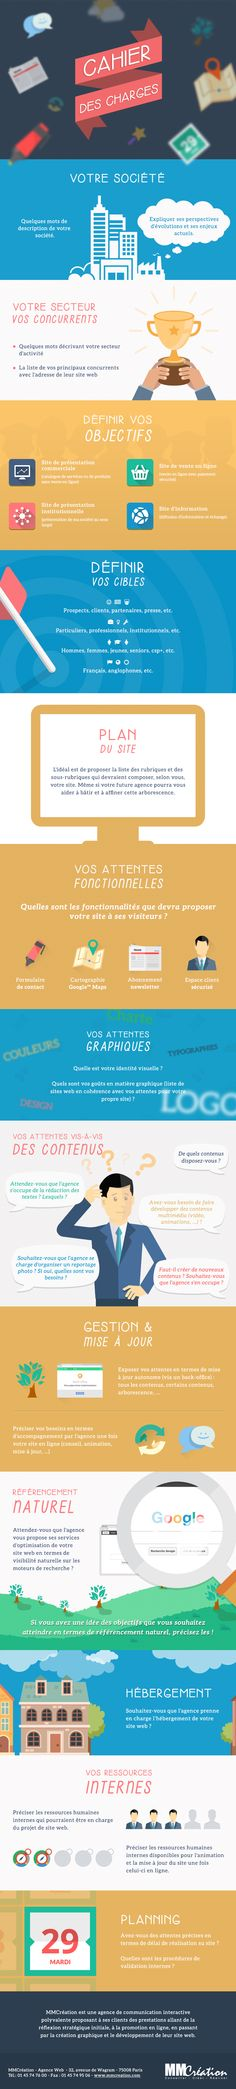 cahier des charges, infographie